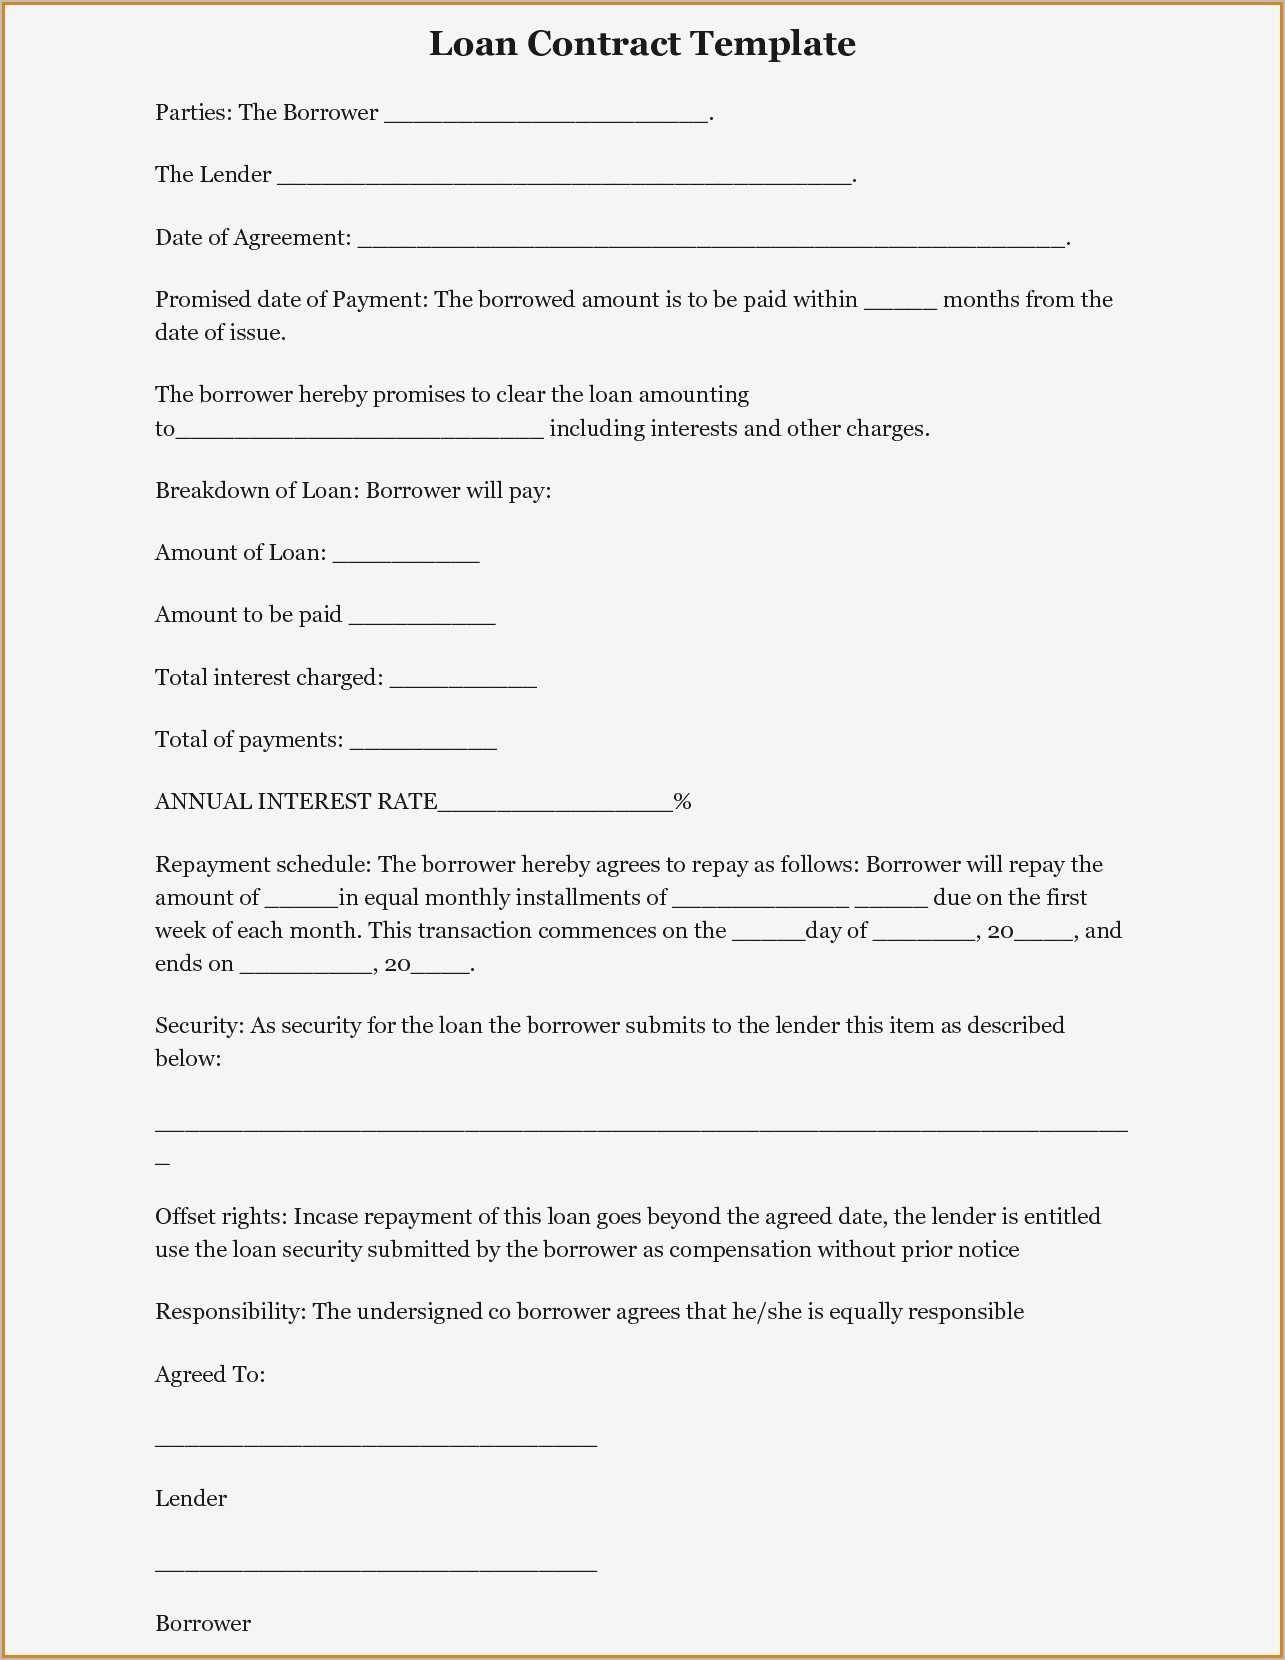 Sample Contract Of Loan Template